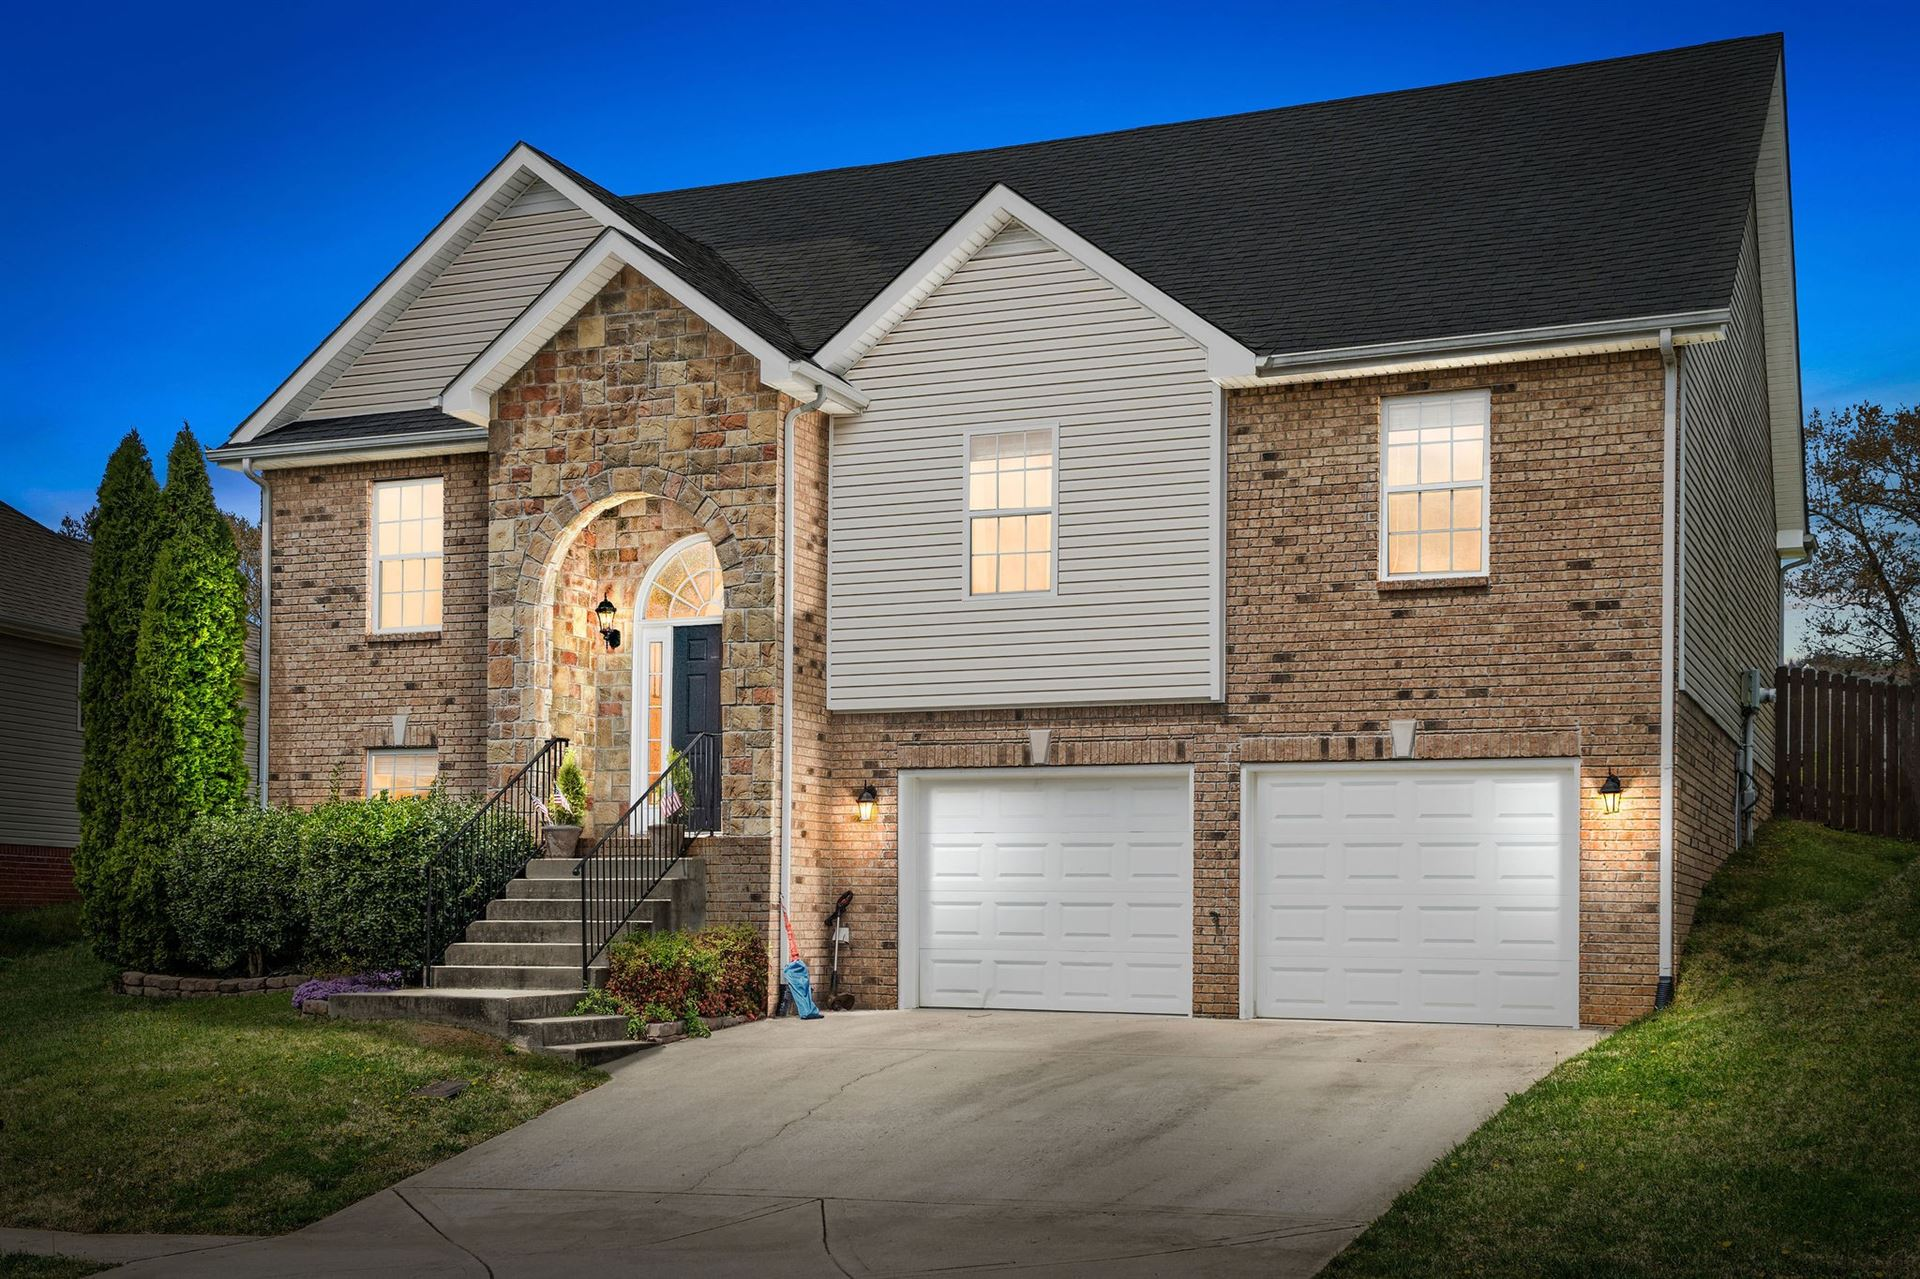 872 E Accipiter Cir, Clarksville, TN 37043 - MLS#: 2243713